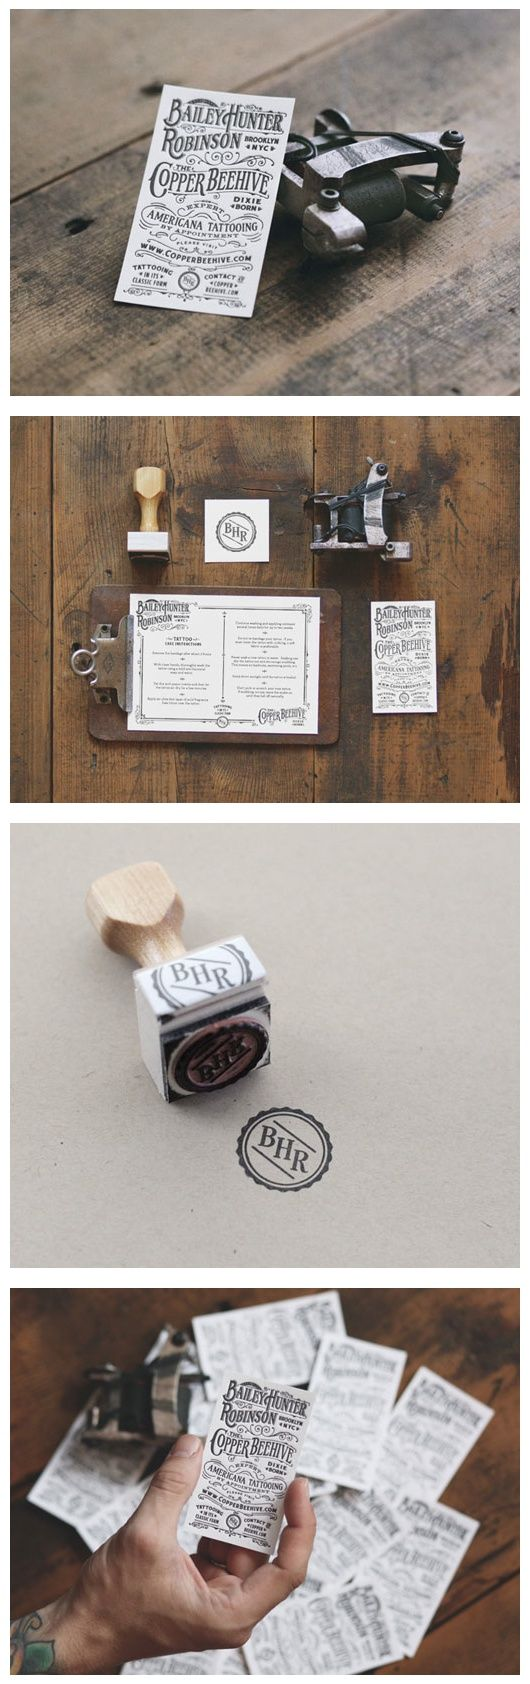 46 best tattoo business cards images on pinterest visit cards two arms expert americana tattooing business cards magicingreecefo Image collections